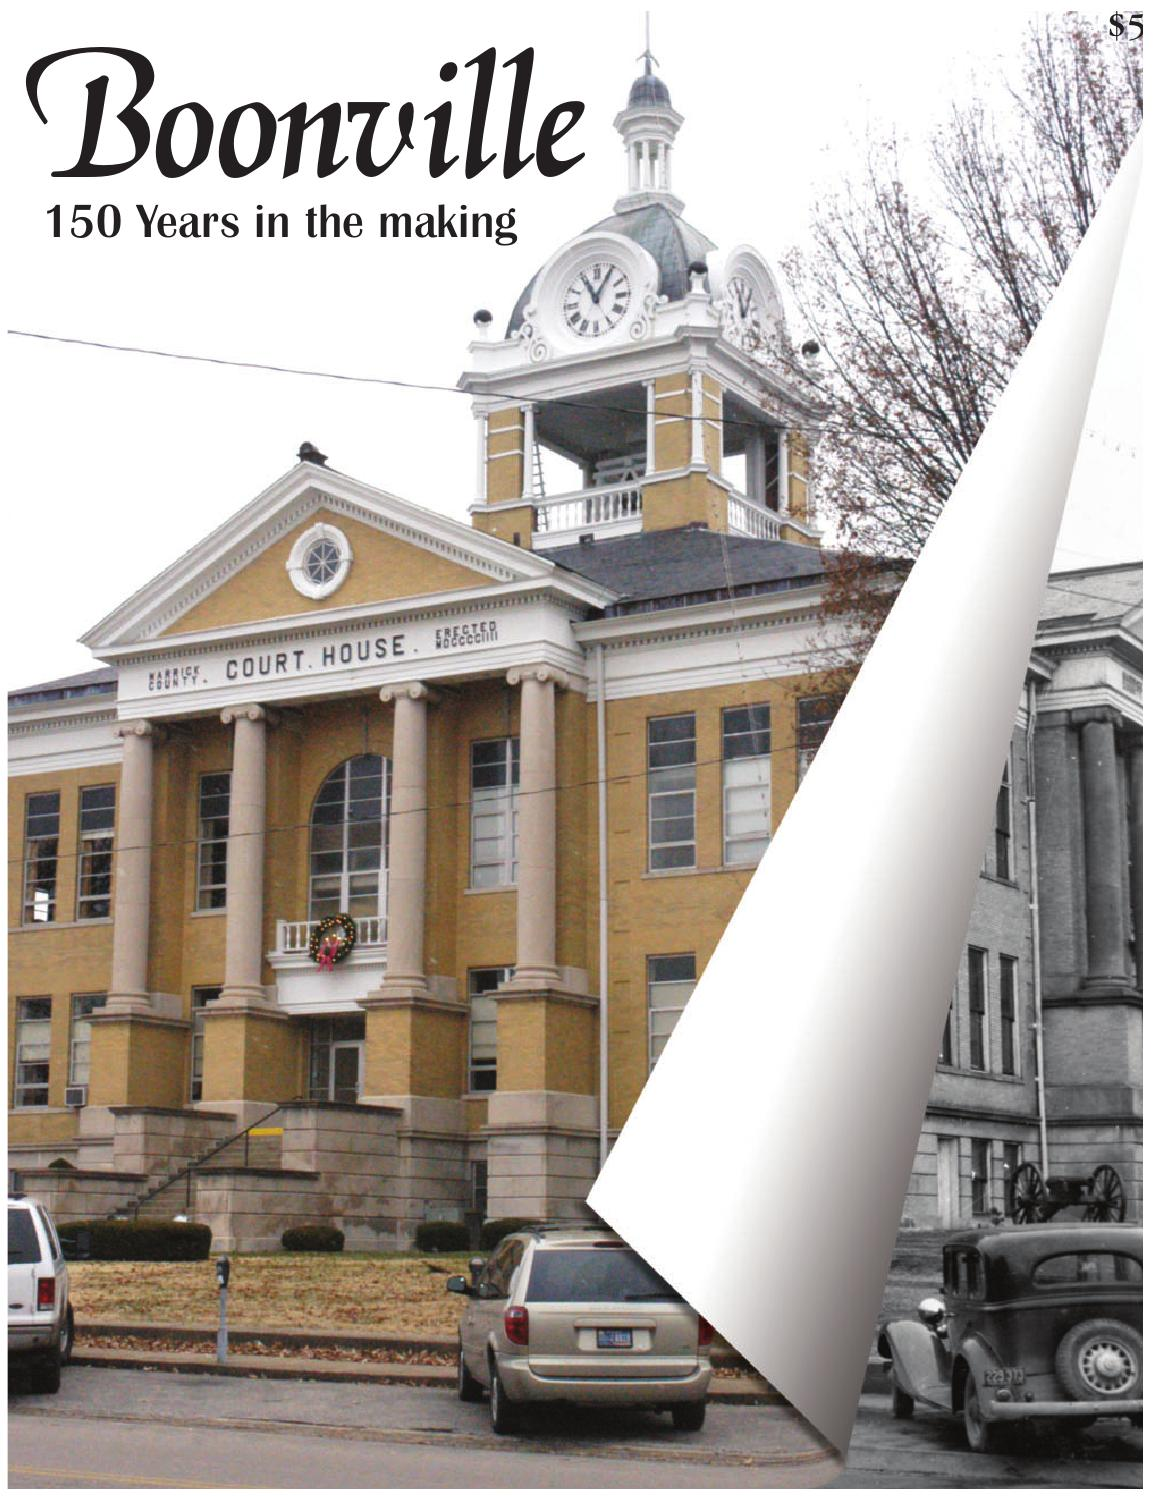 Boonville 150 years in the making by Warrick Publishing